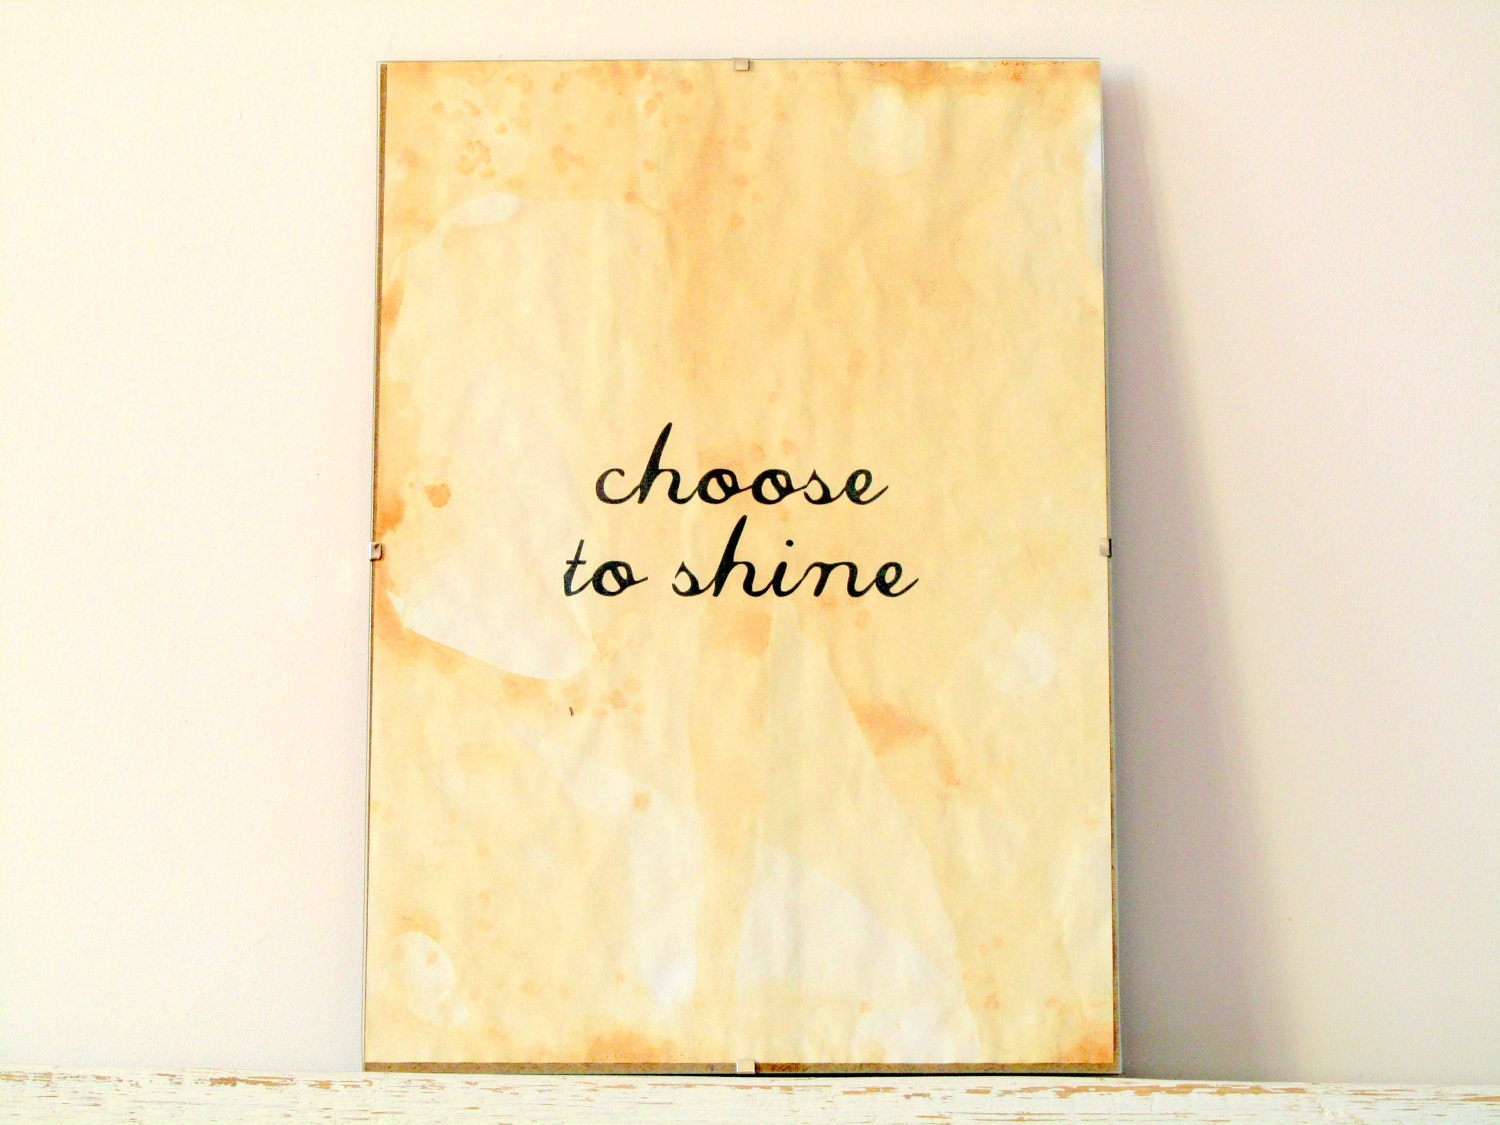 Wall Decor, Poster, Sign - Choose to shine - regularhome